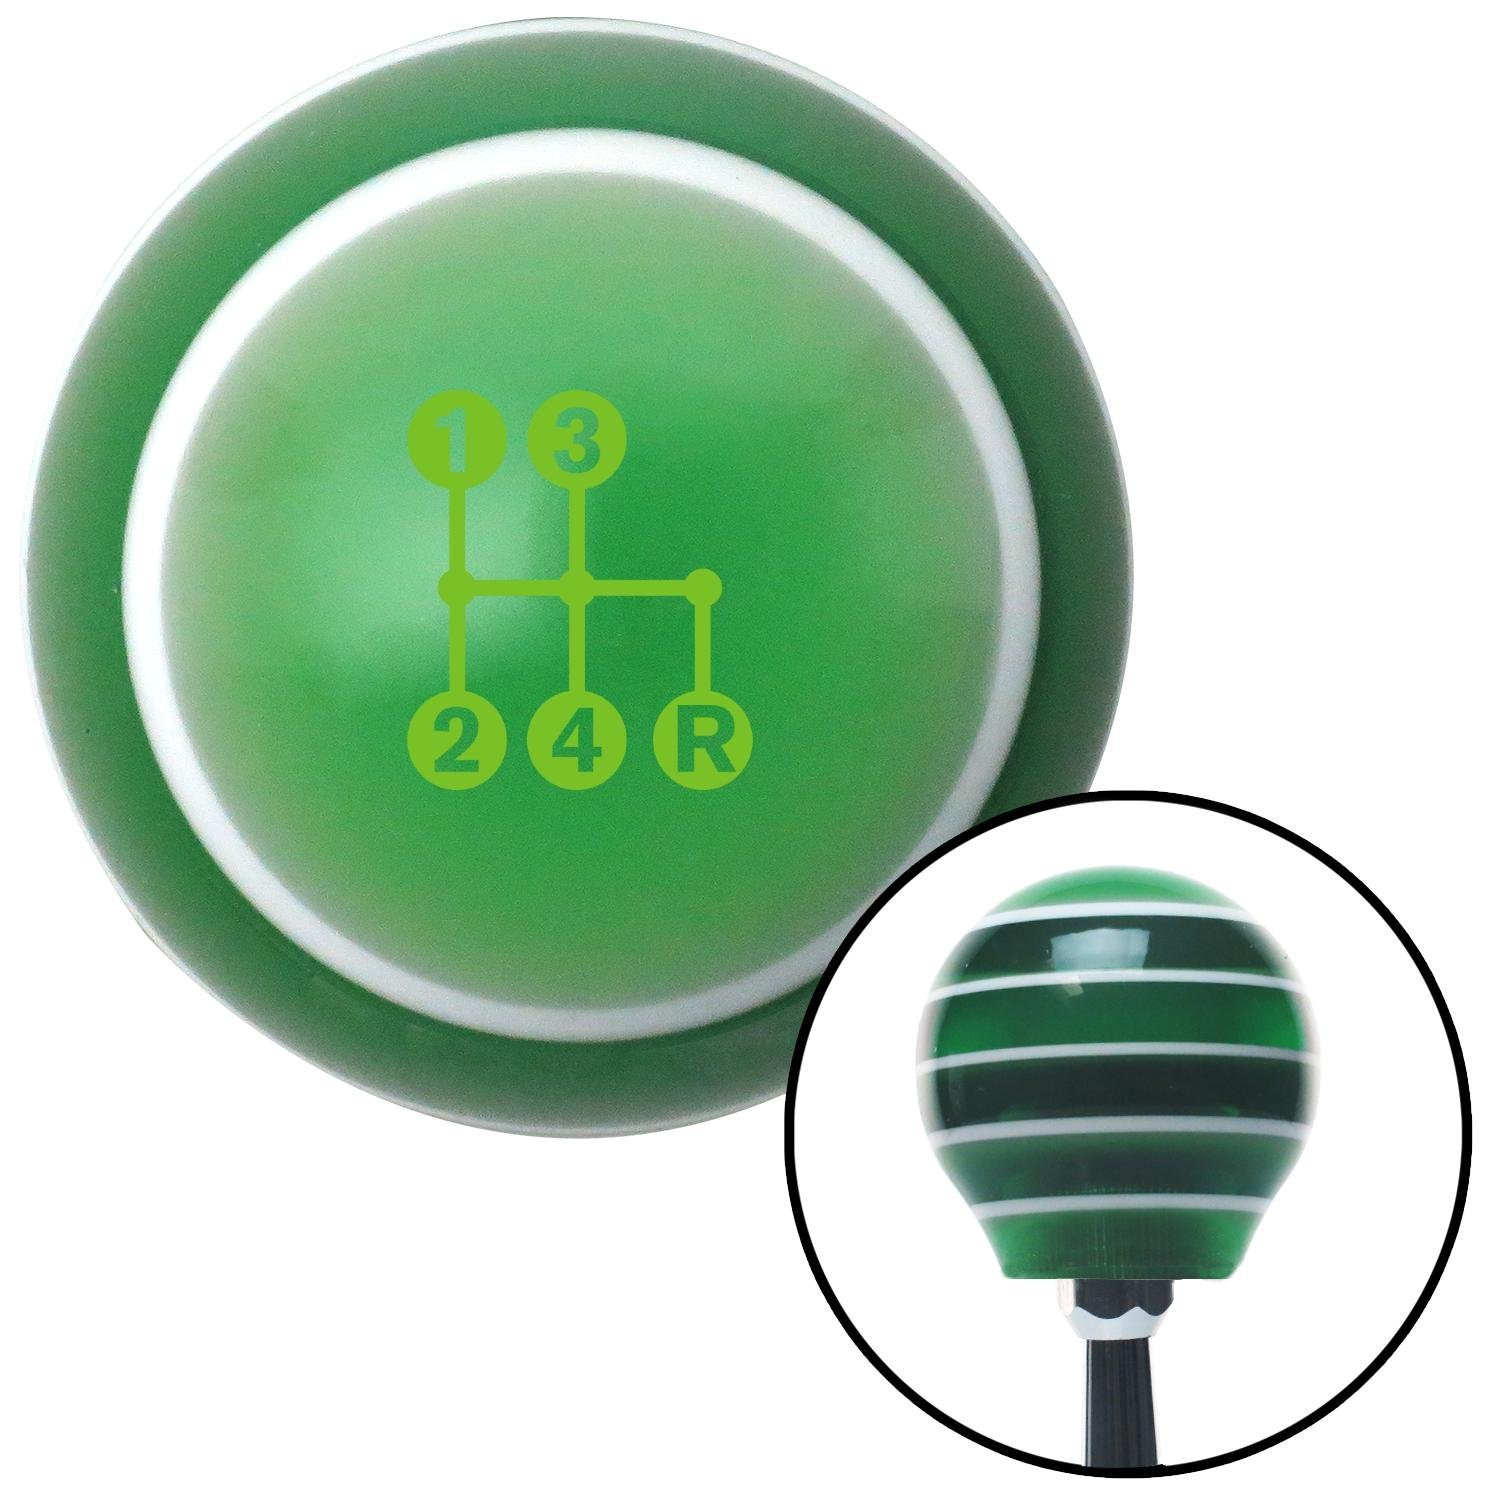 American Shifter 275604 Shift Knob Green 4 Speed Shift Pattern - Dots 6n Green Stripe with M16 x 1.5 Insert